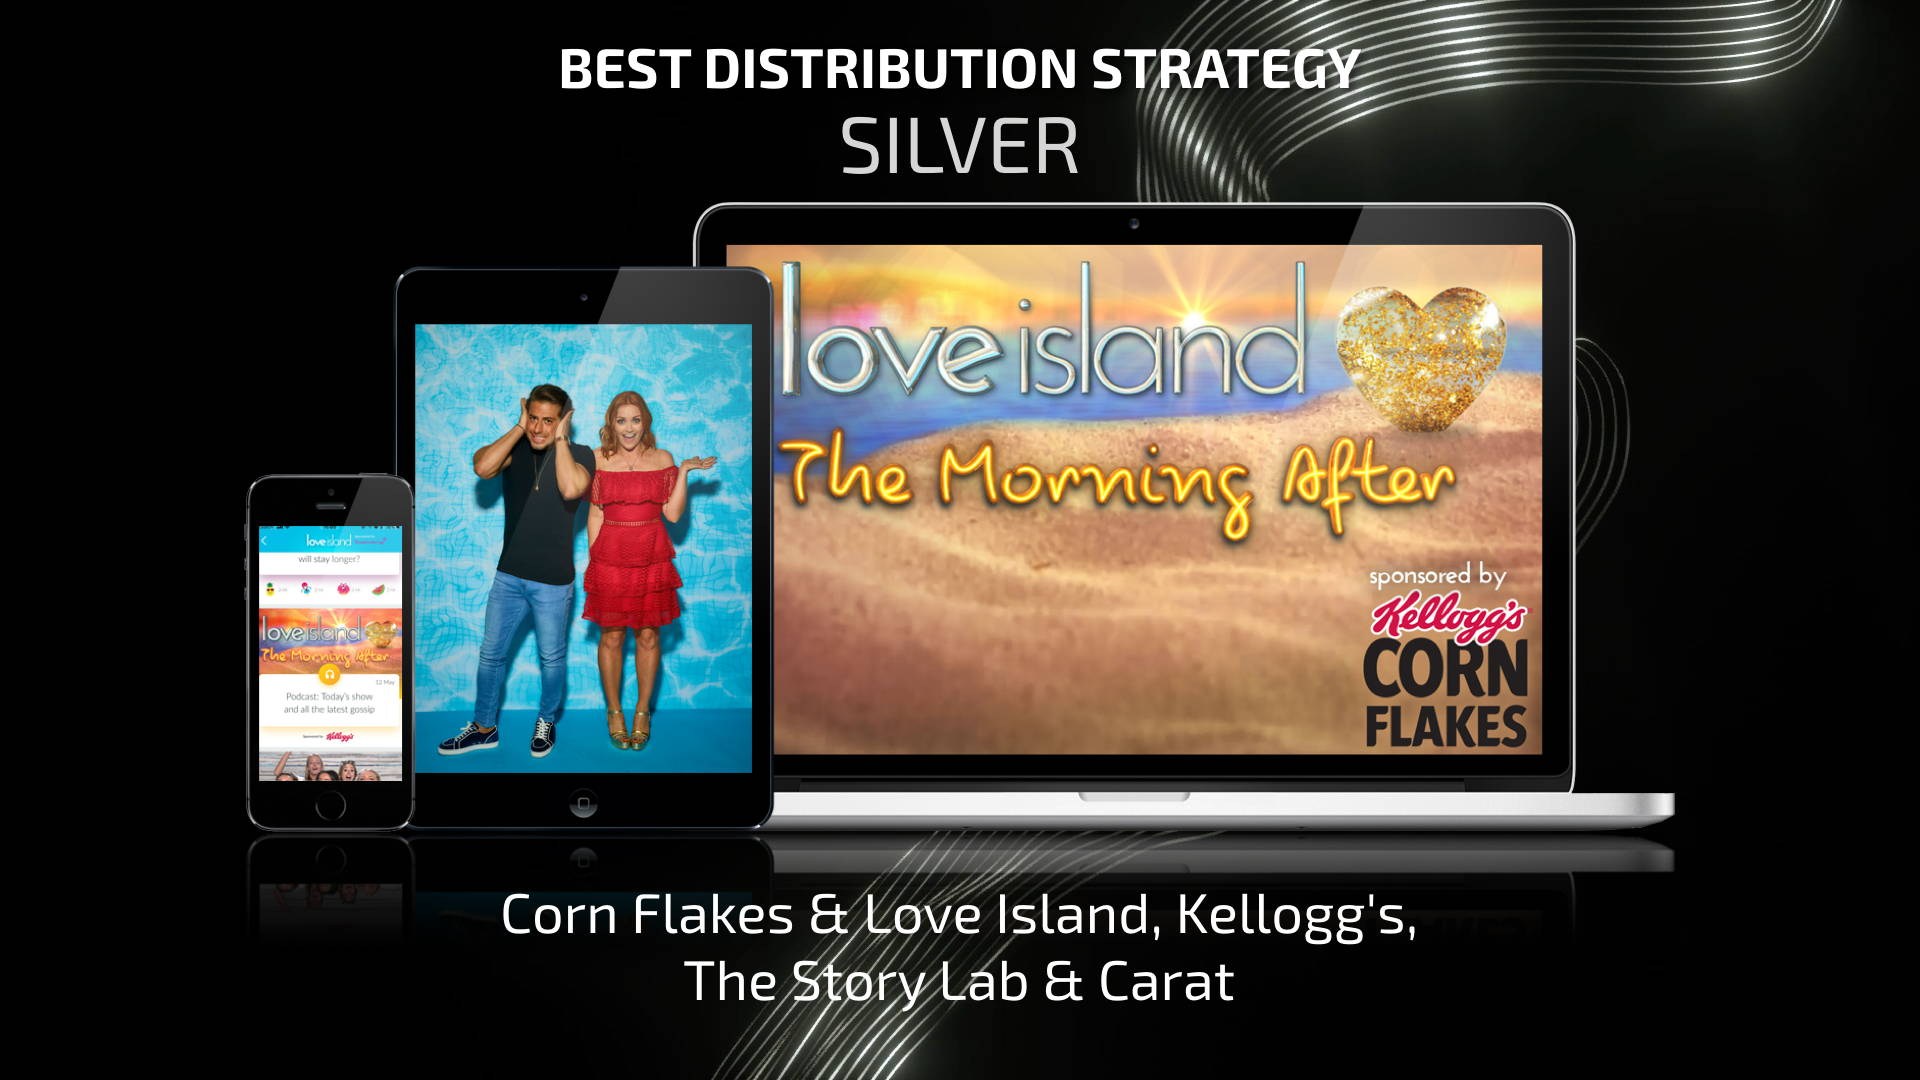 Best Distribution Strategy - Silver